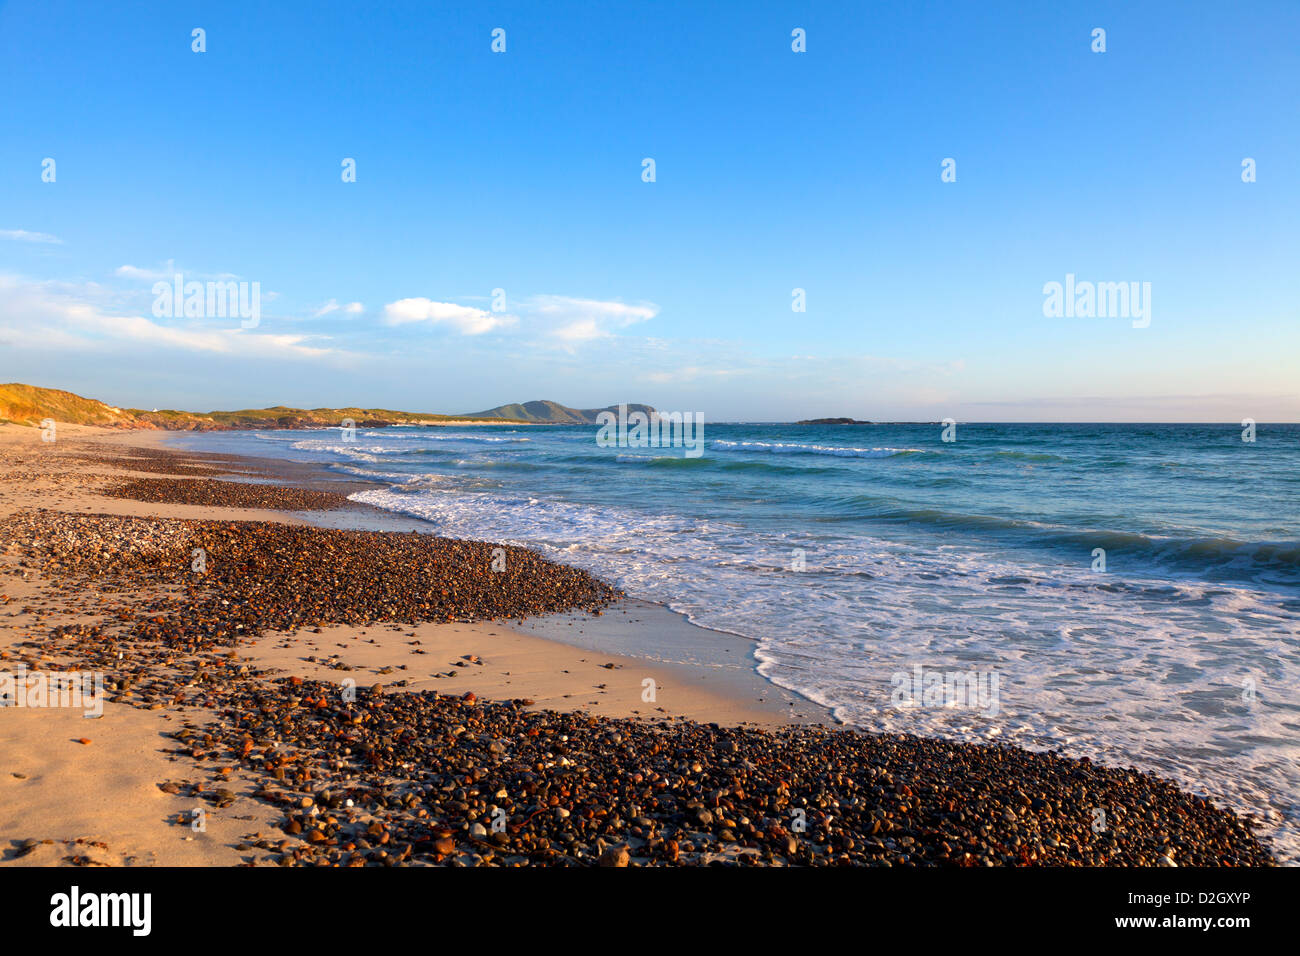 Scotland, Argyll & Bute, Inner Hebrides, Tiree View along The Maze Beach in late evening light - Stock Image